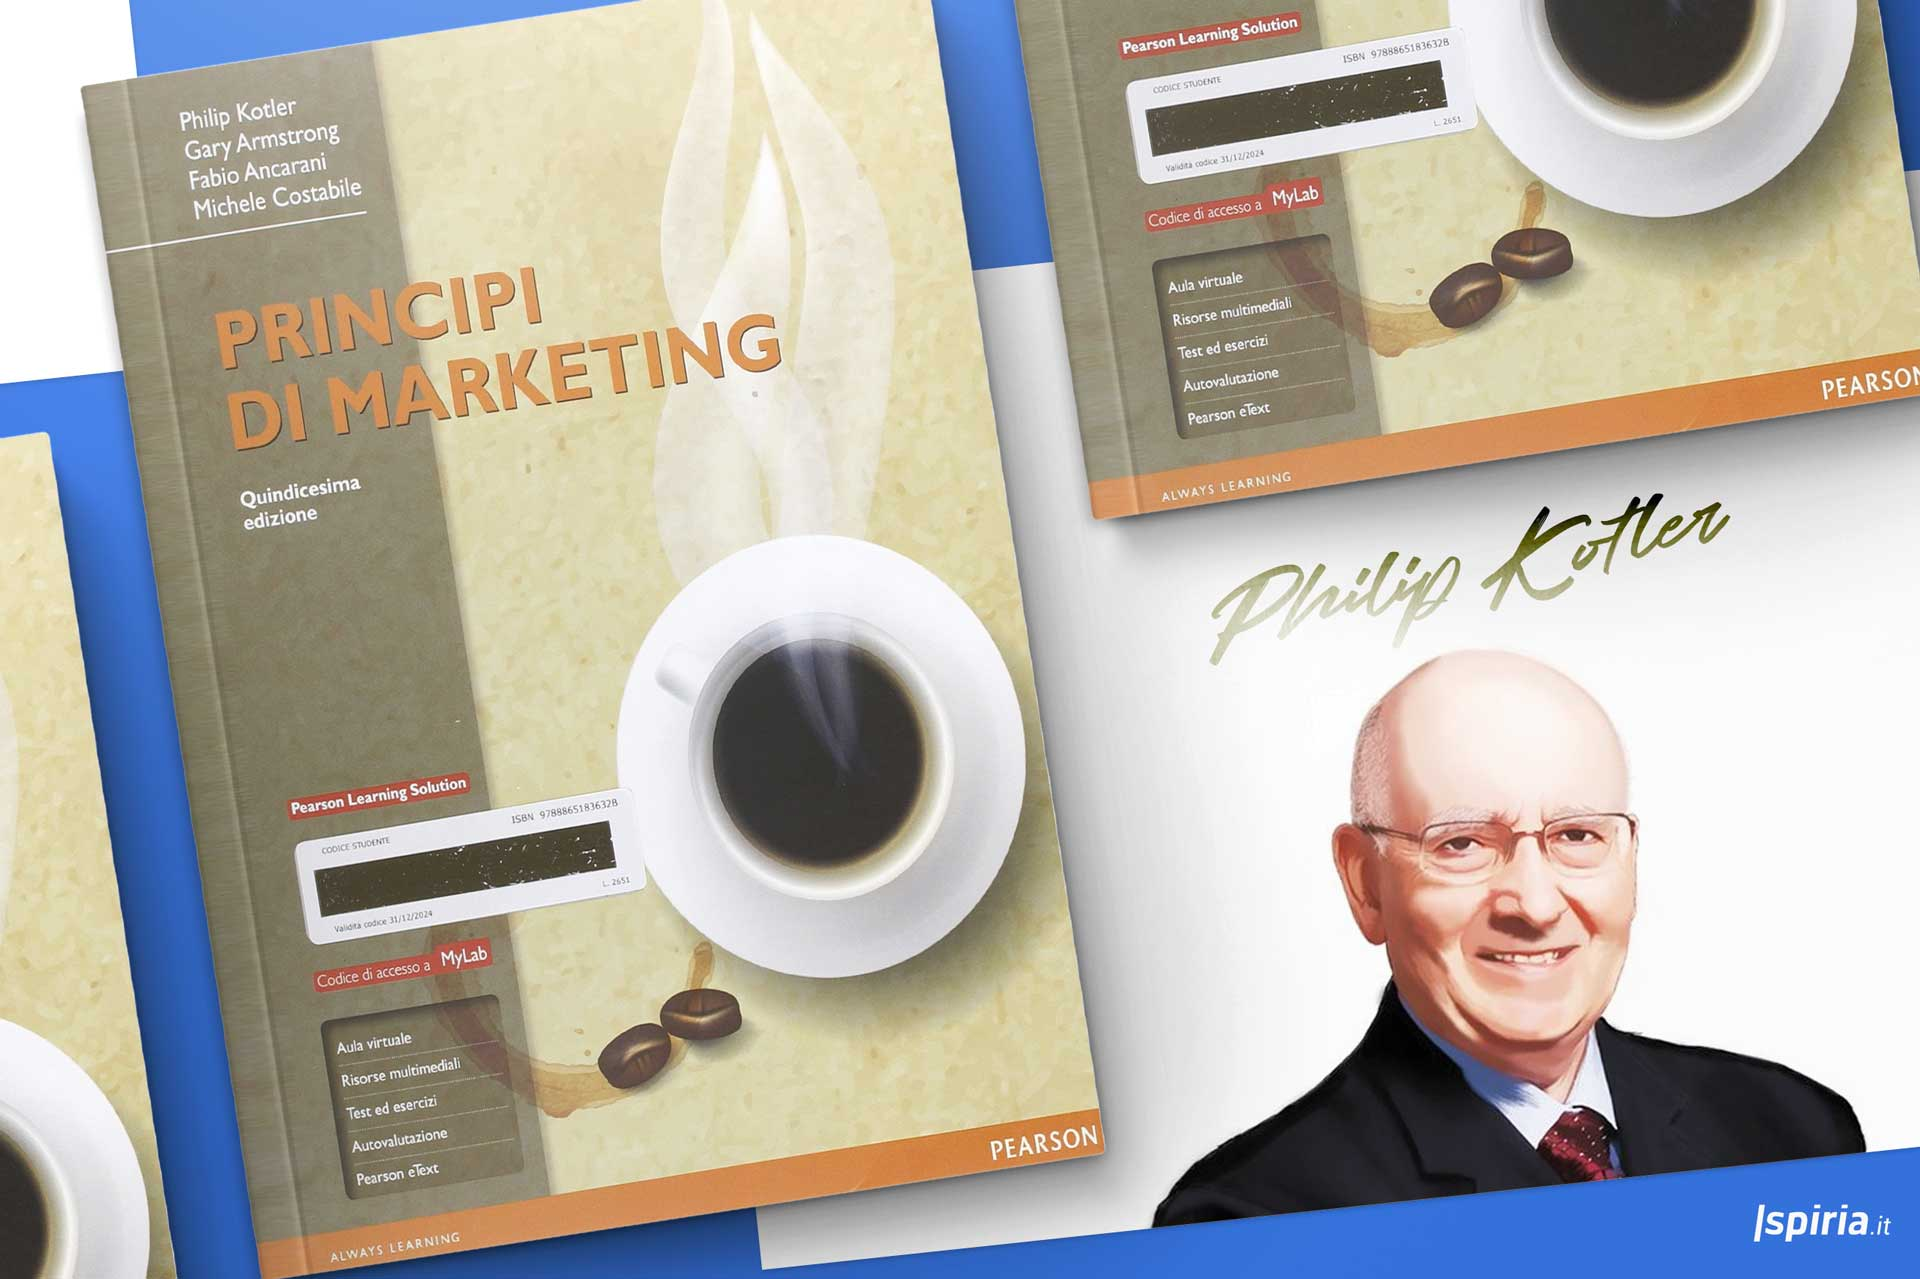 principi-di-marketing-migliori-libri-kotler-libro